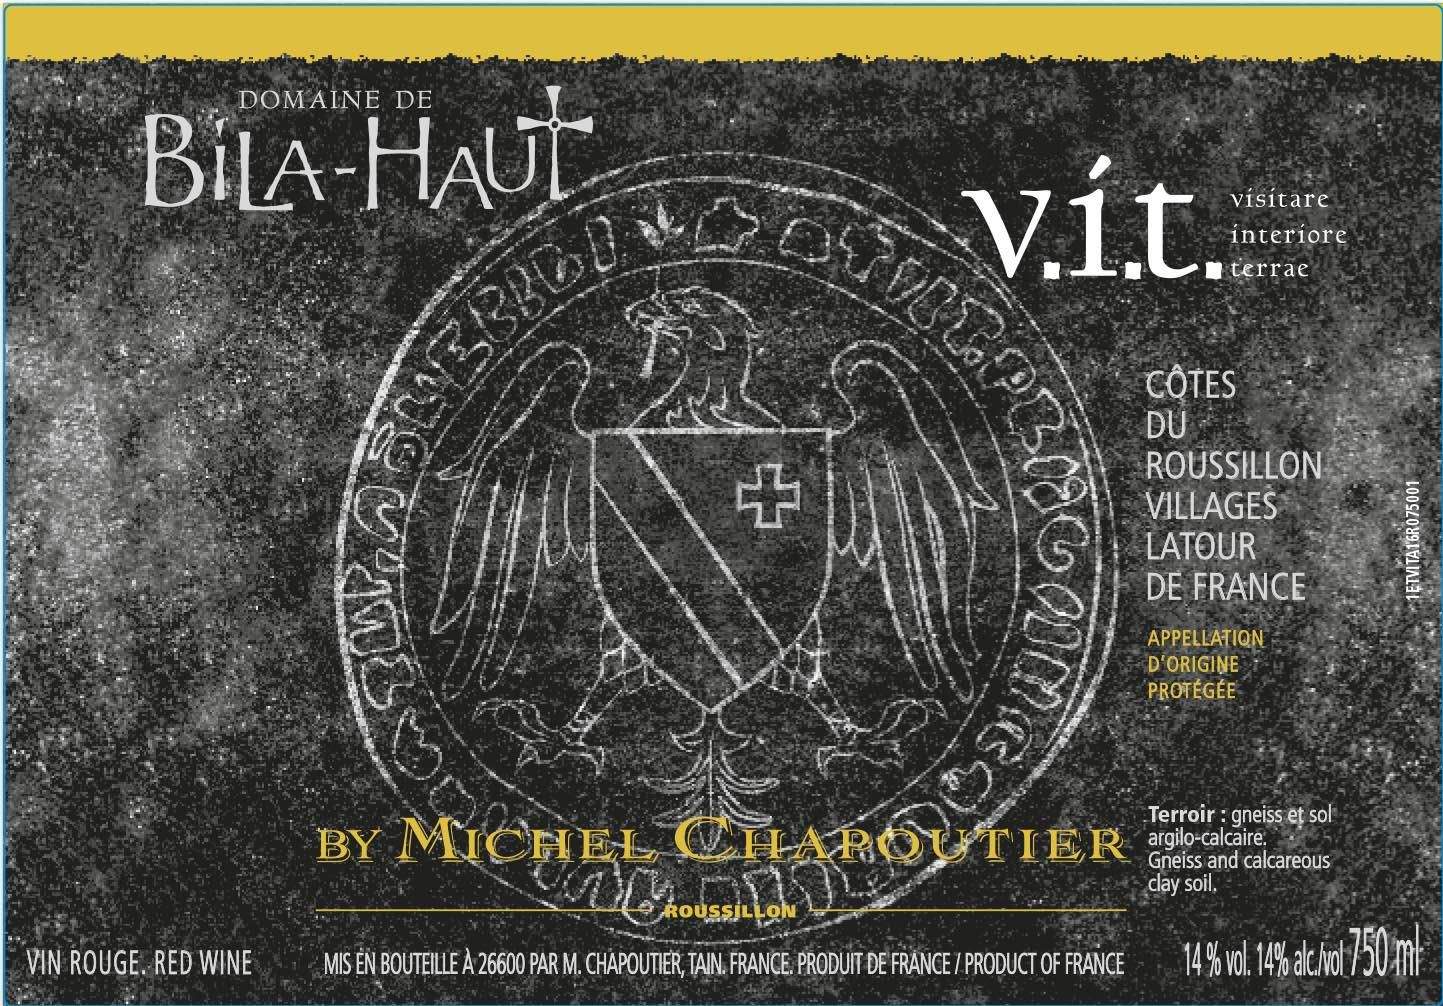 Bila-Haut by Michel Chapoutier v.i.t. Cotes du Roussillon Villages 2015  Front Label